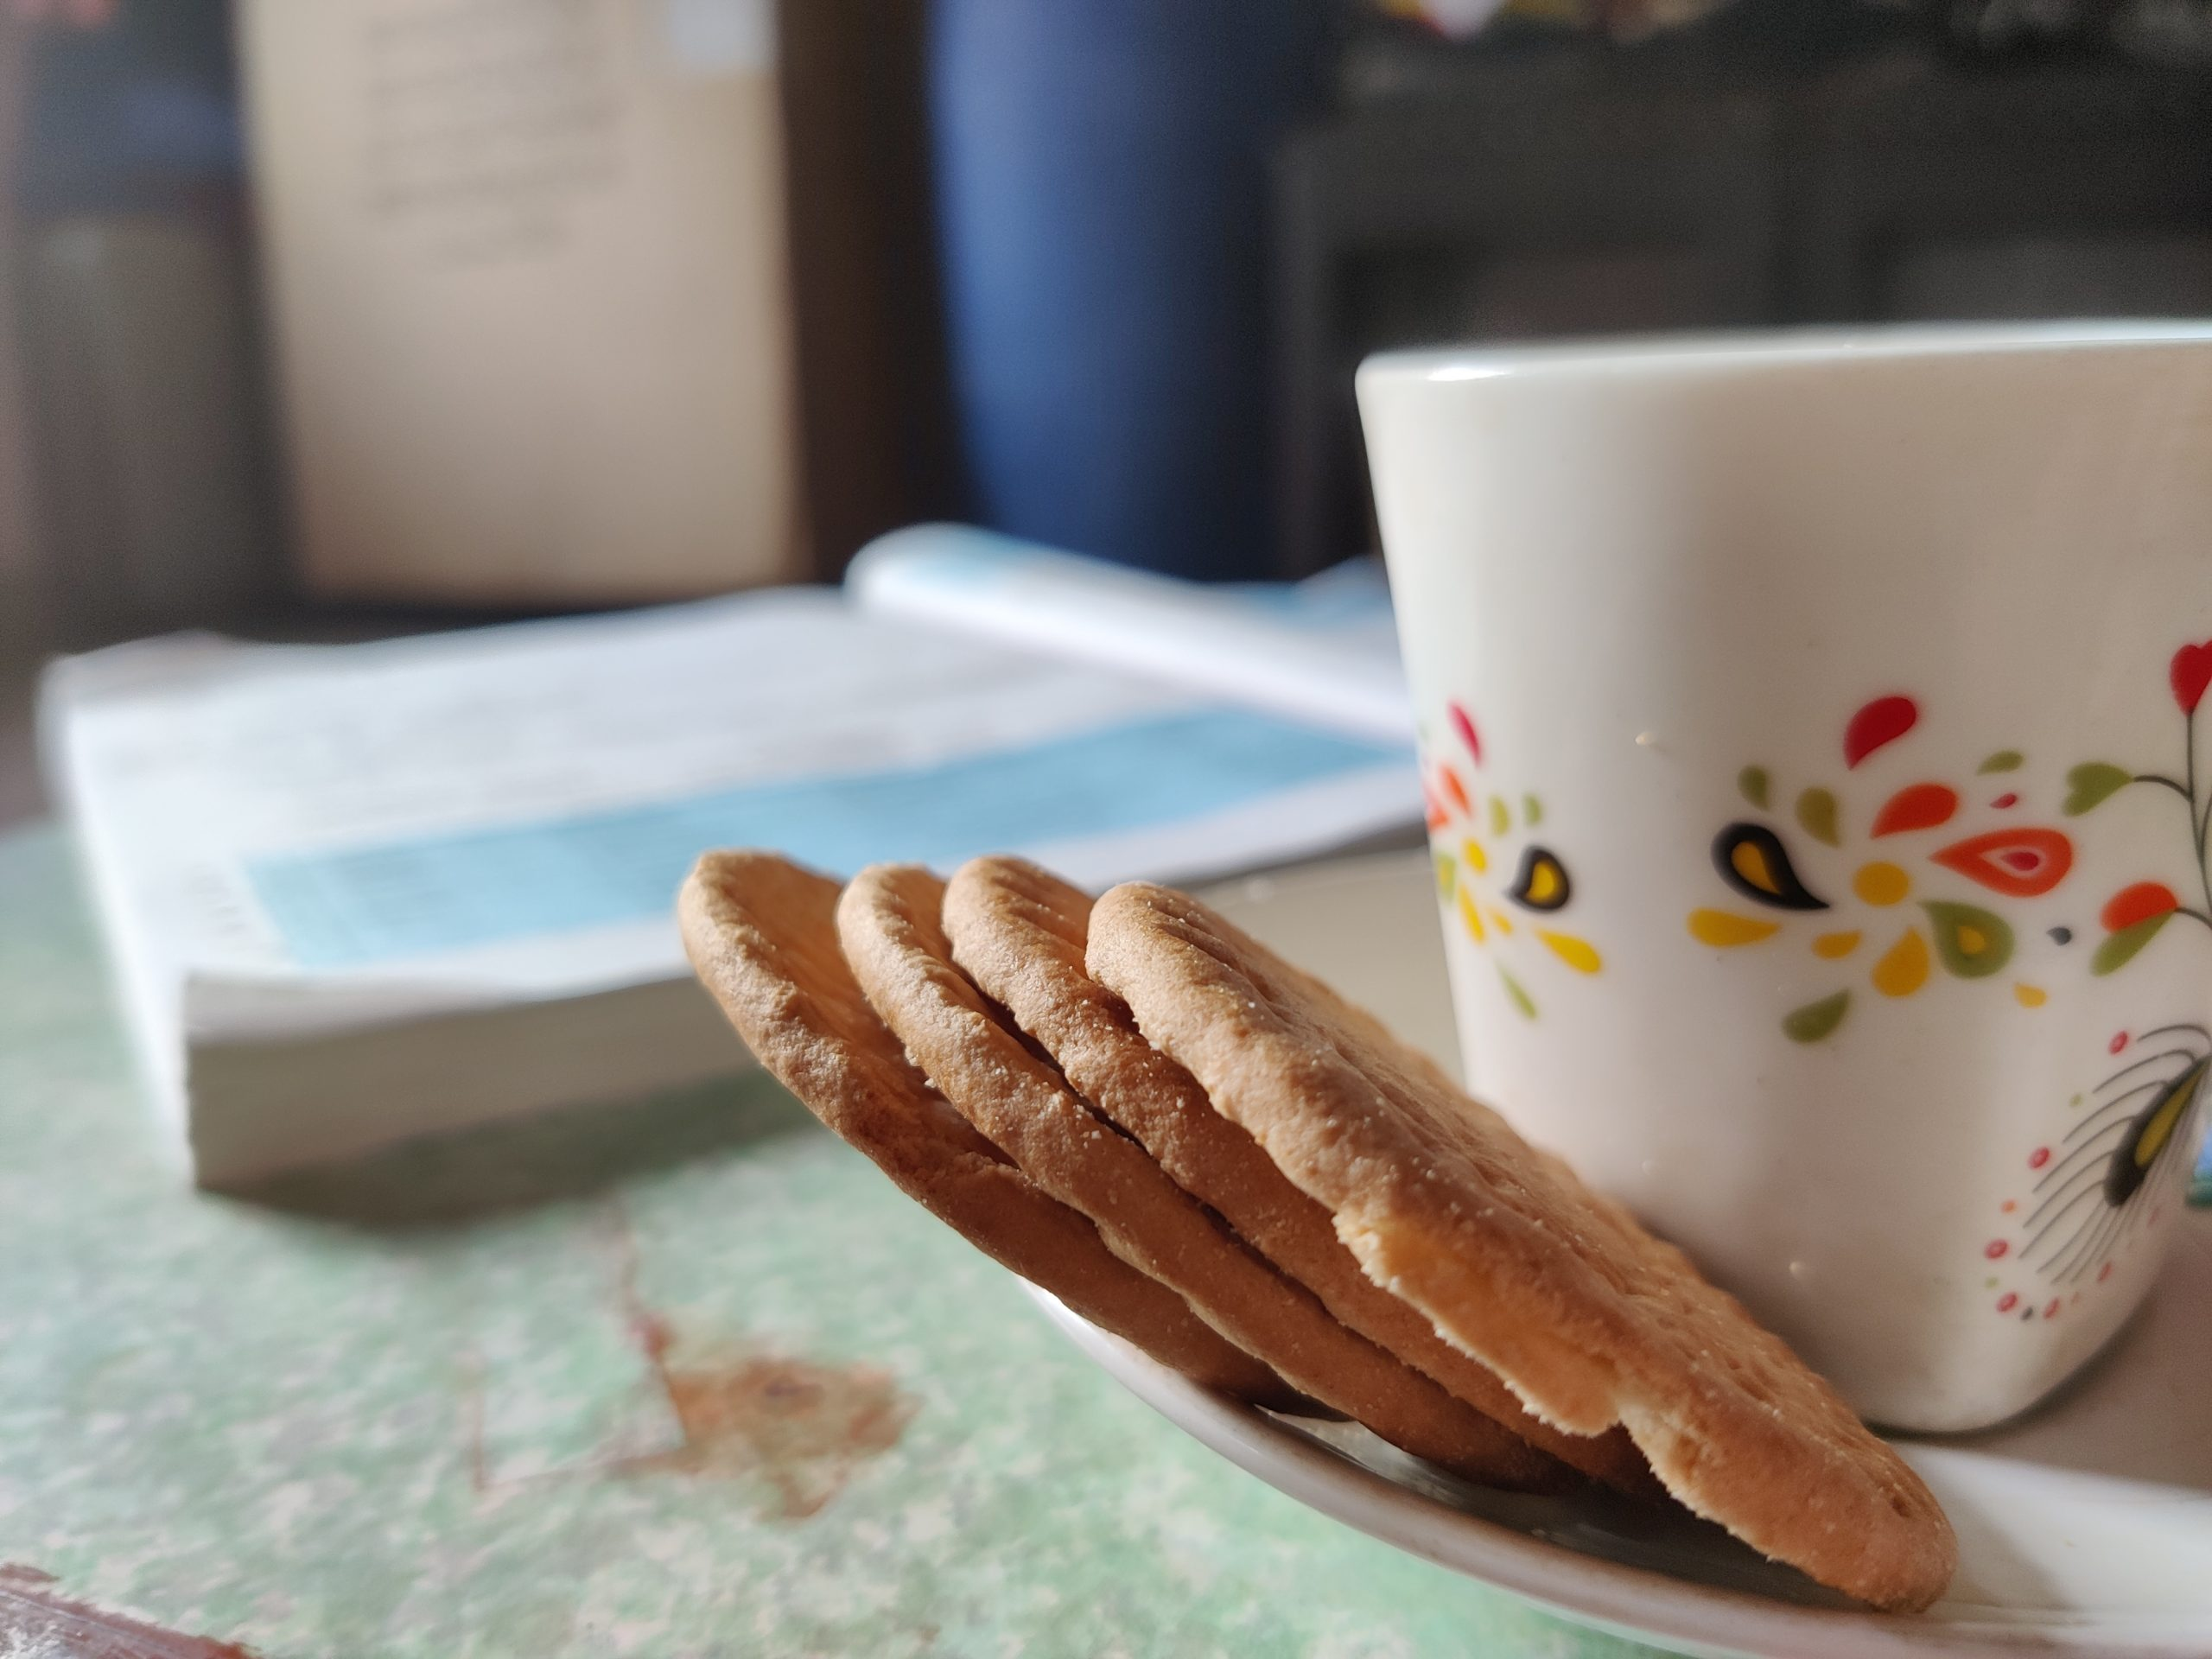 biscuits and tea cup